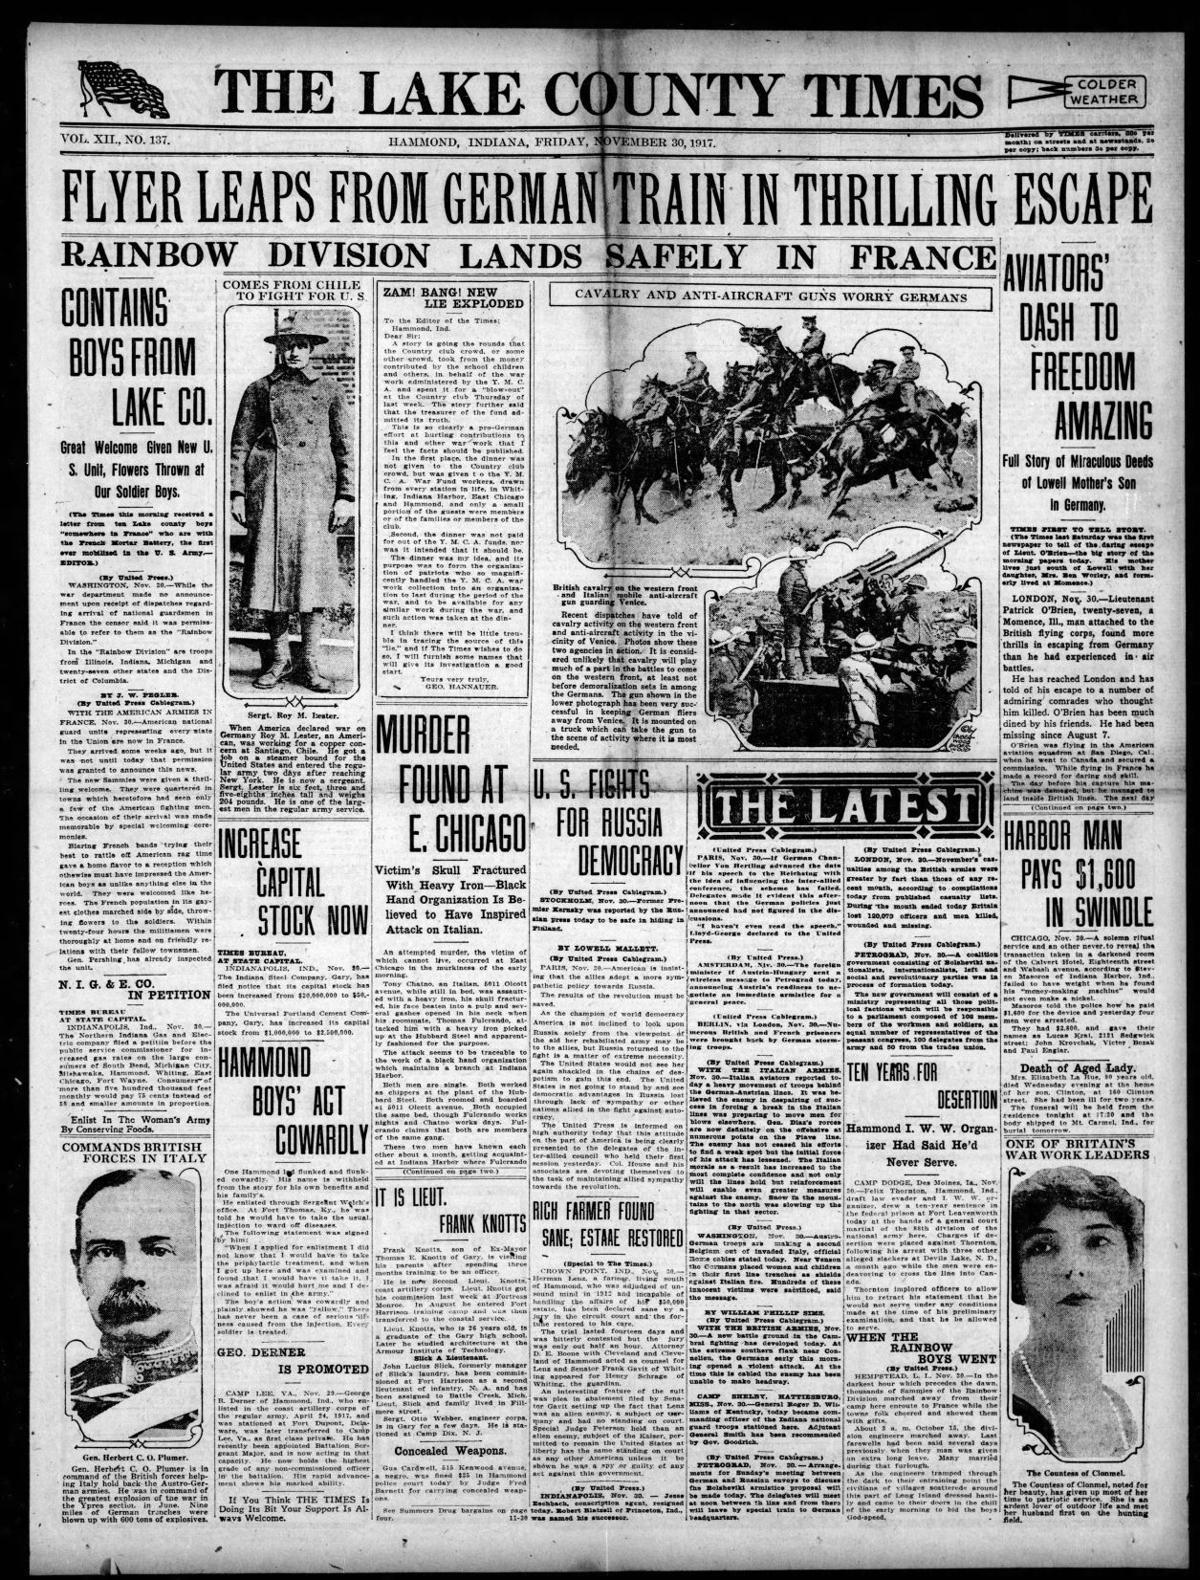 Nov. 30, 1917: Flyer Leaps From German Train In Thrilling Escape